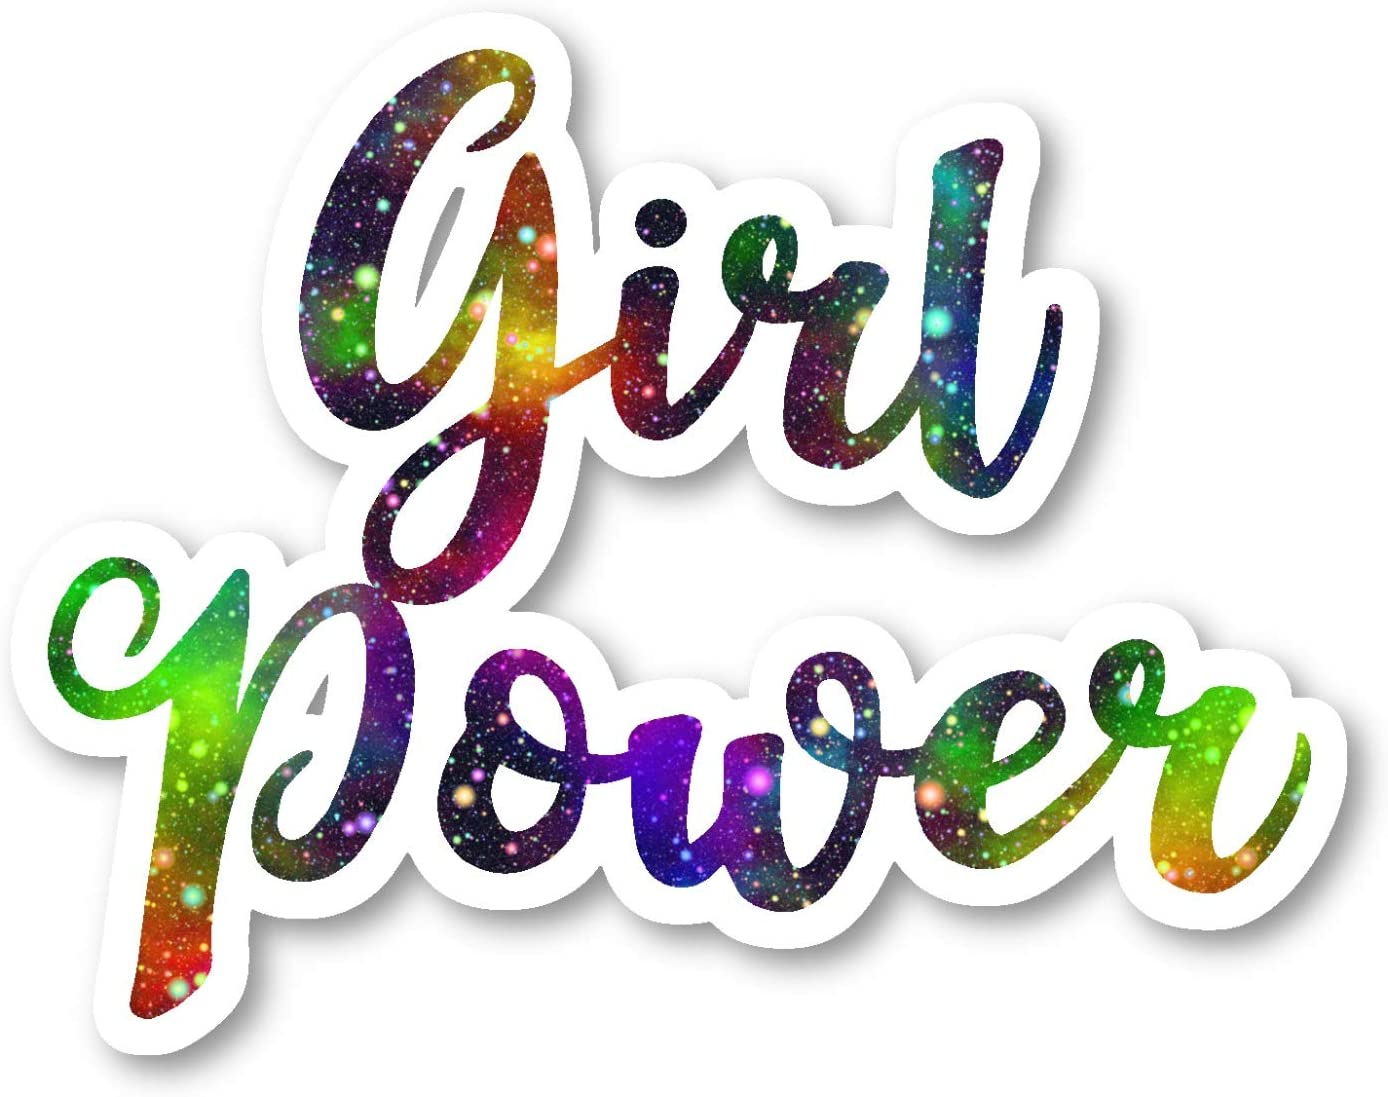 Girl Power Sticker Galaxy Inspirational Quotes Stickers - 2 Pack - Laptop Stickers - 2.5 Inches Vinyl Decal - Laptop, Phone, Tablet Vinyl Decal Sticker (2 Pack) S214615